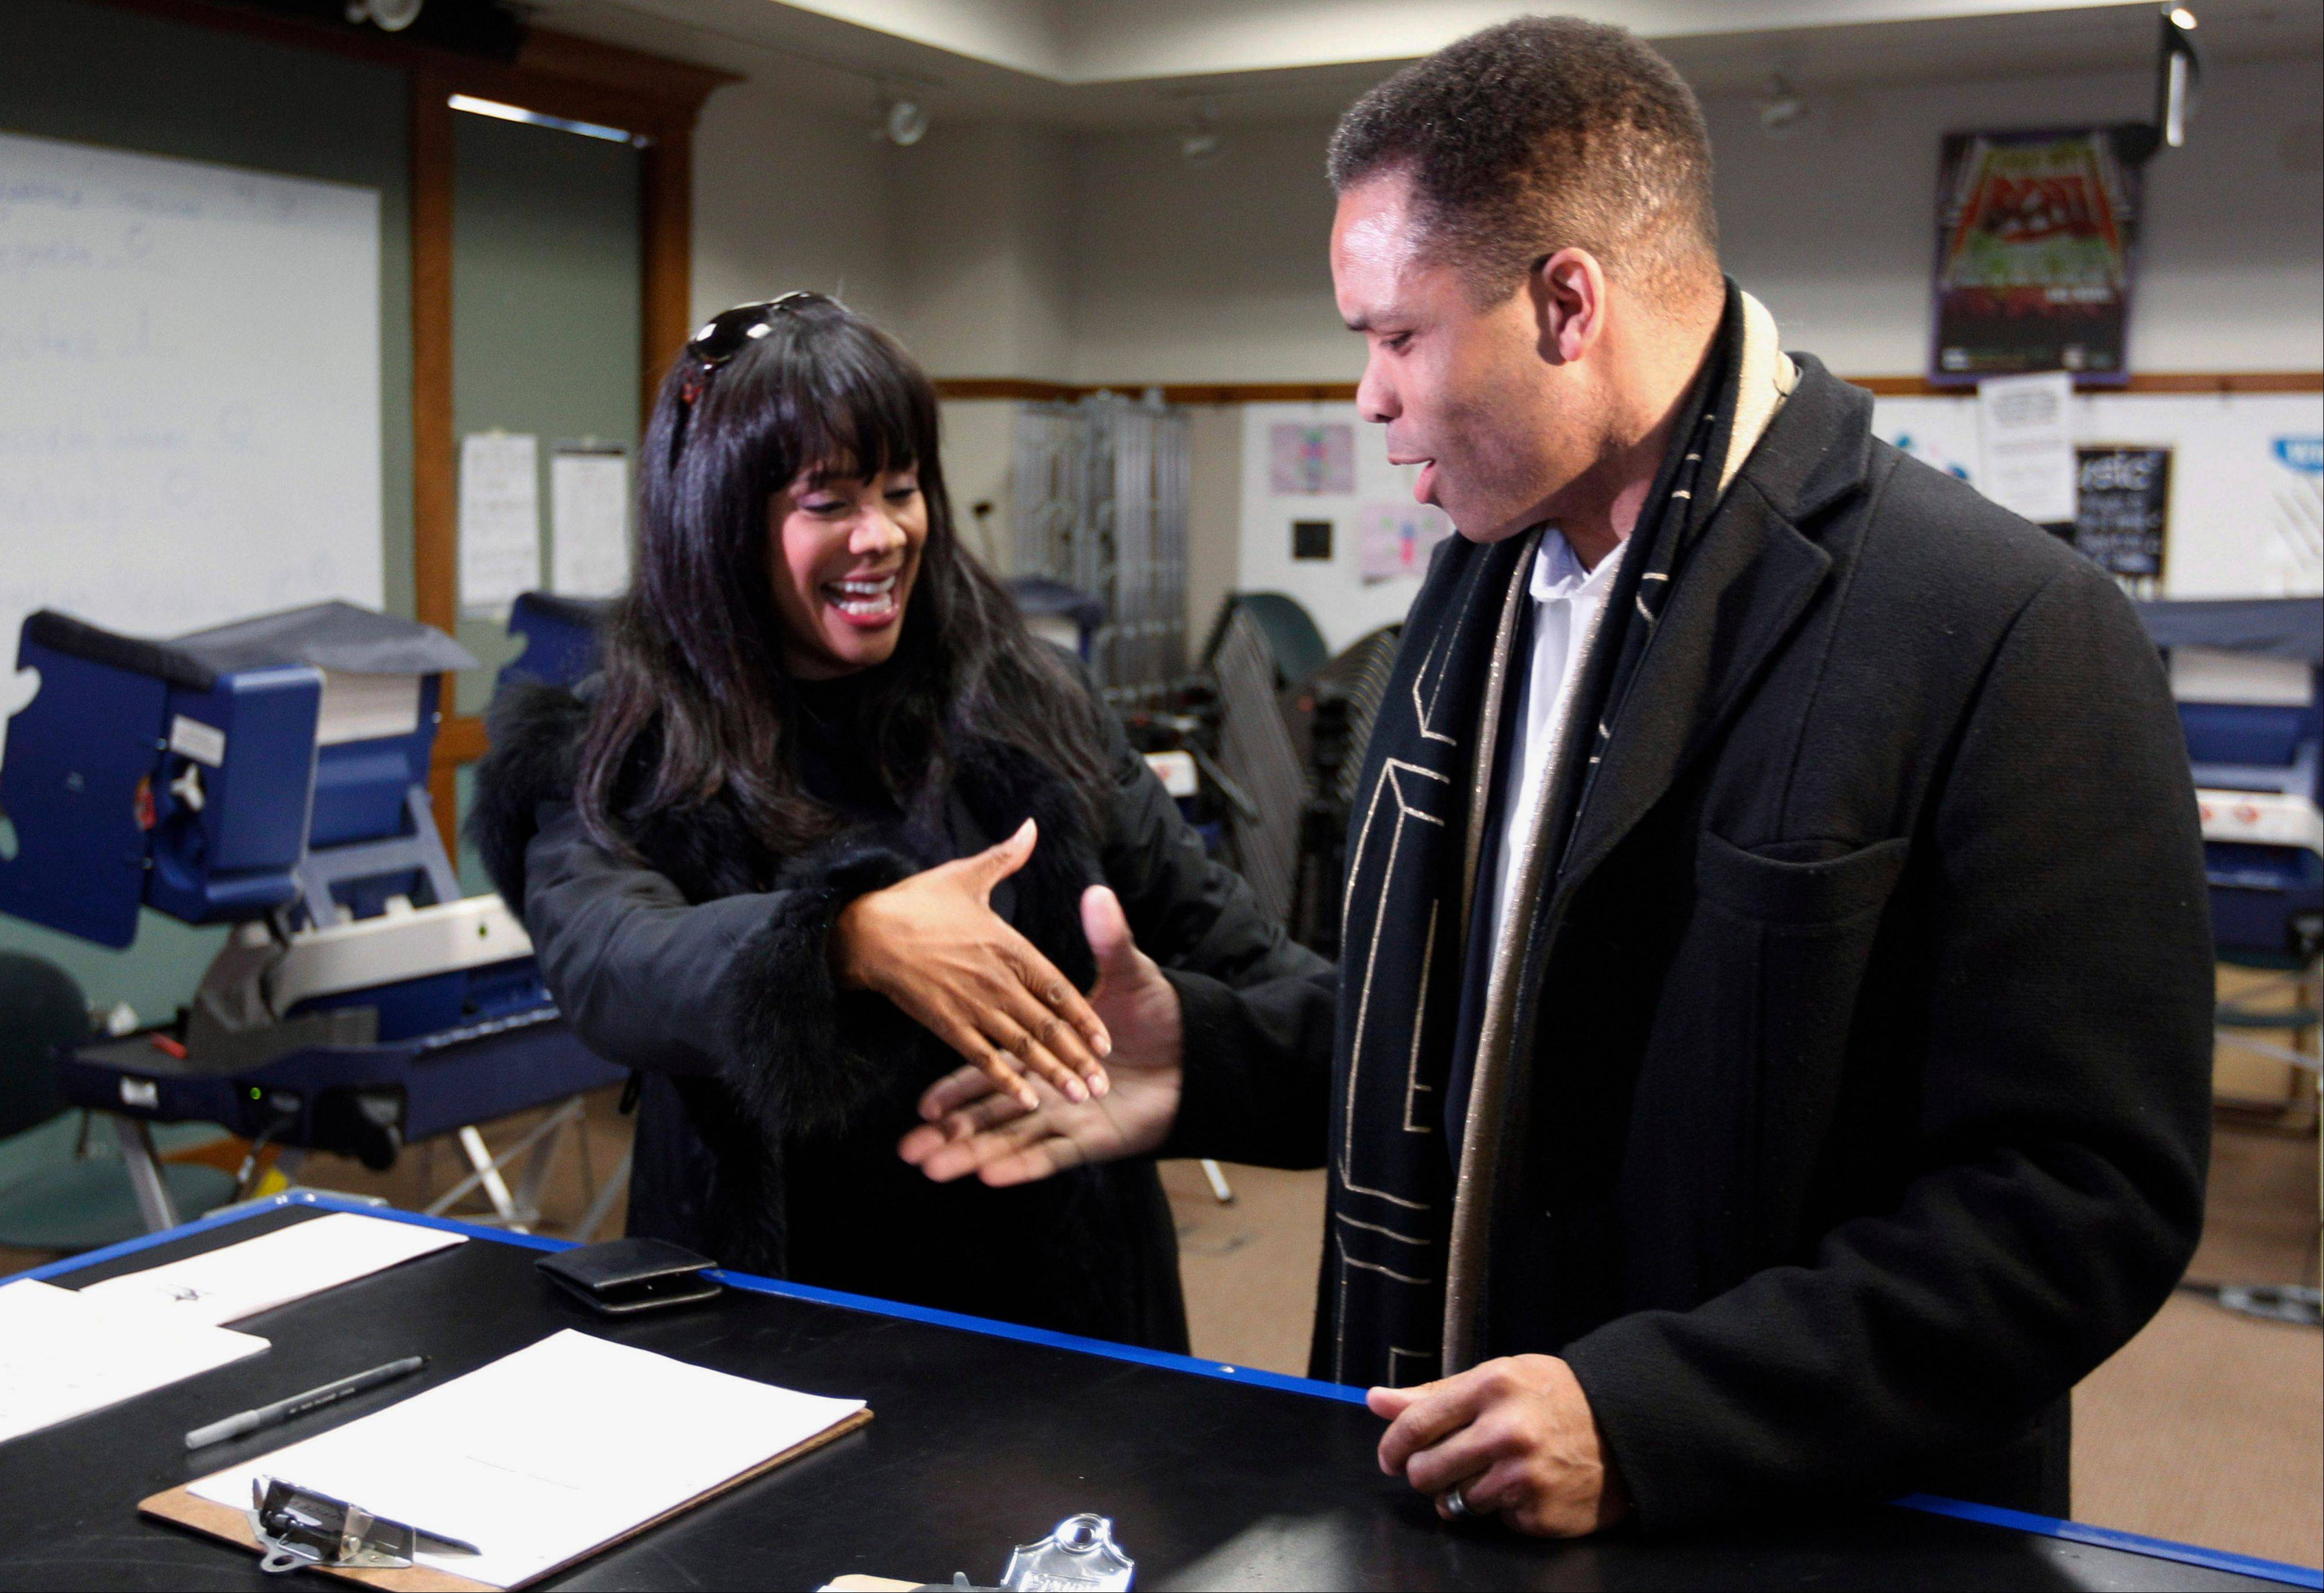 Then-Rep. Jesse Jackson Jr. and his wife, then-Alderman Sandra Jackson, ask for each other's support as they arrive at a polling station for early voting last March in Chicago.